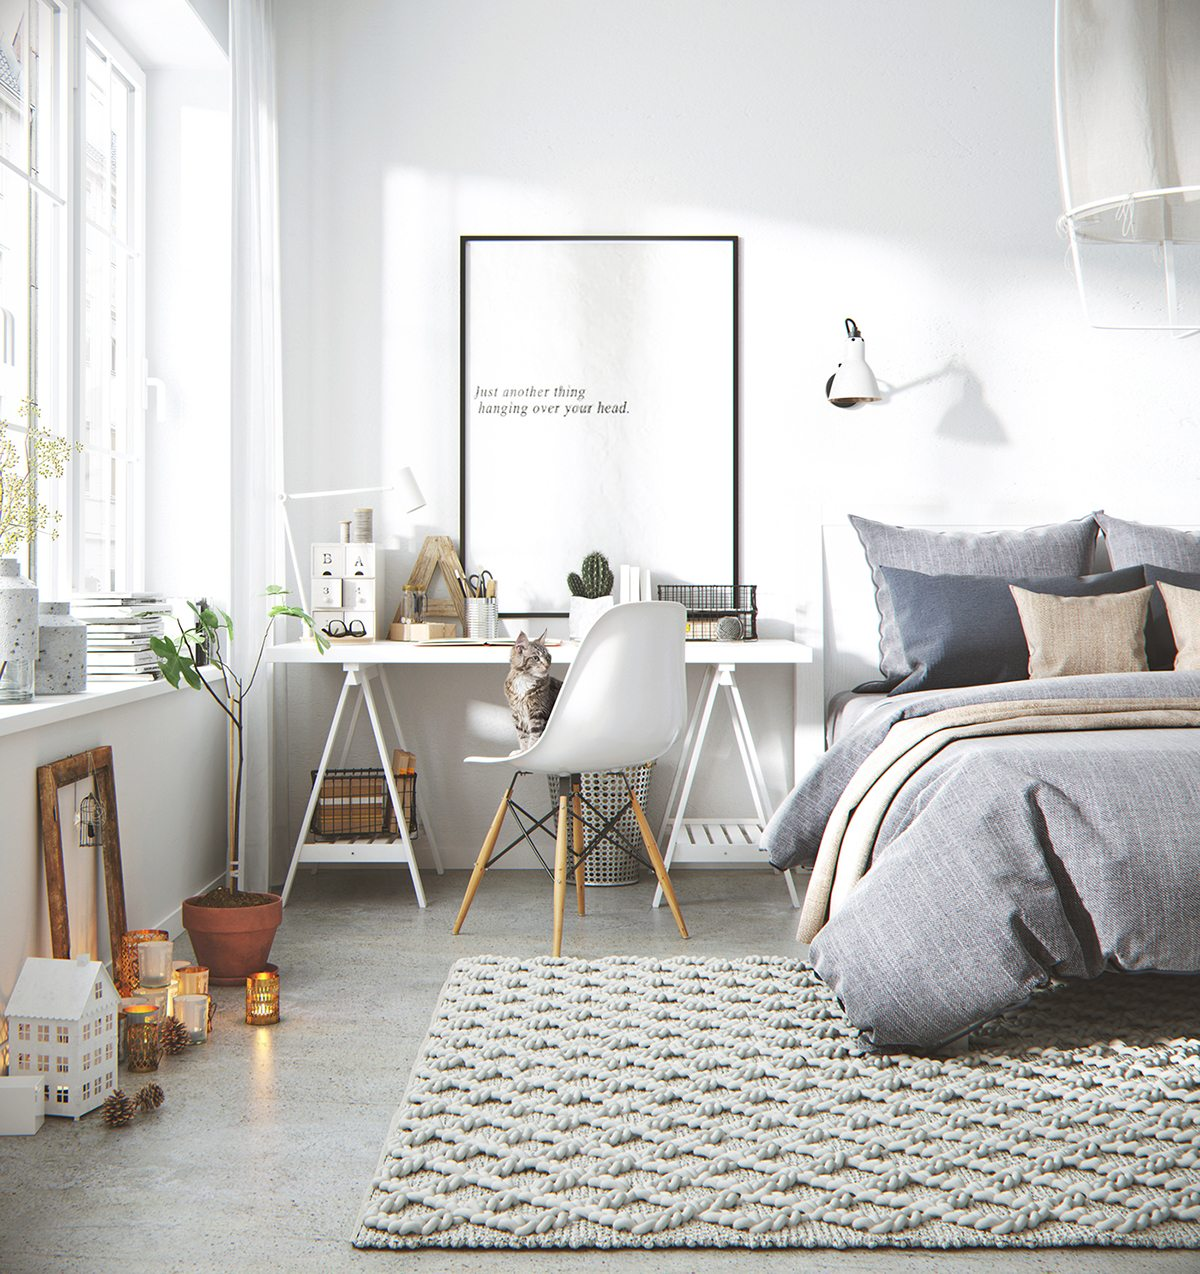 Gorgeous Ways To Incorporate Scandinavian Designs Into: Bright And Cheerful: 5 Beautiful Scandinavian-Inspired